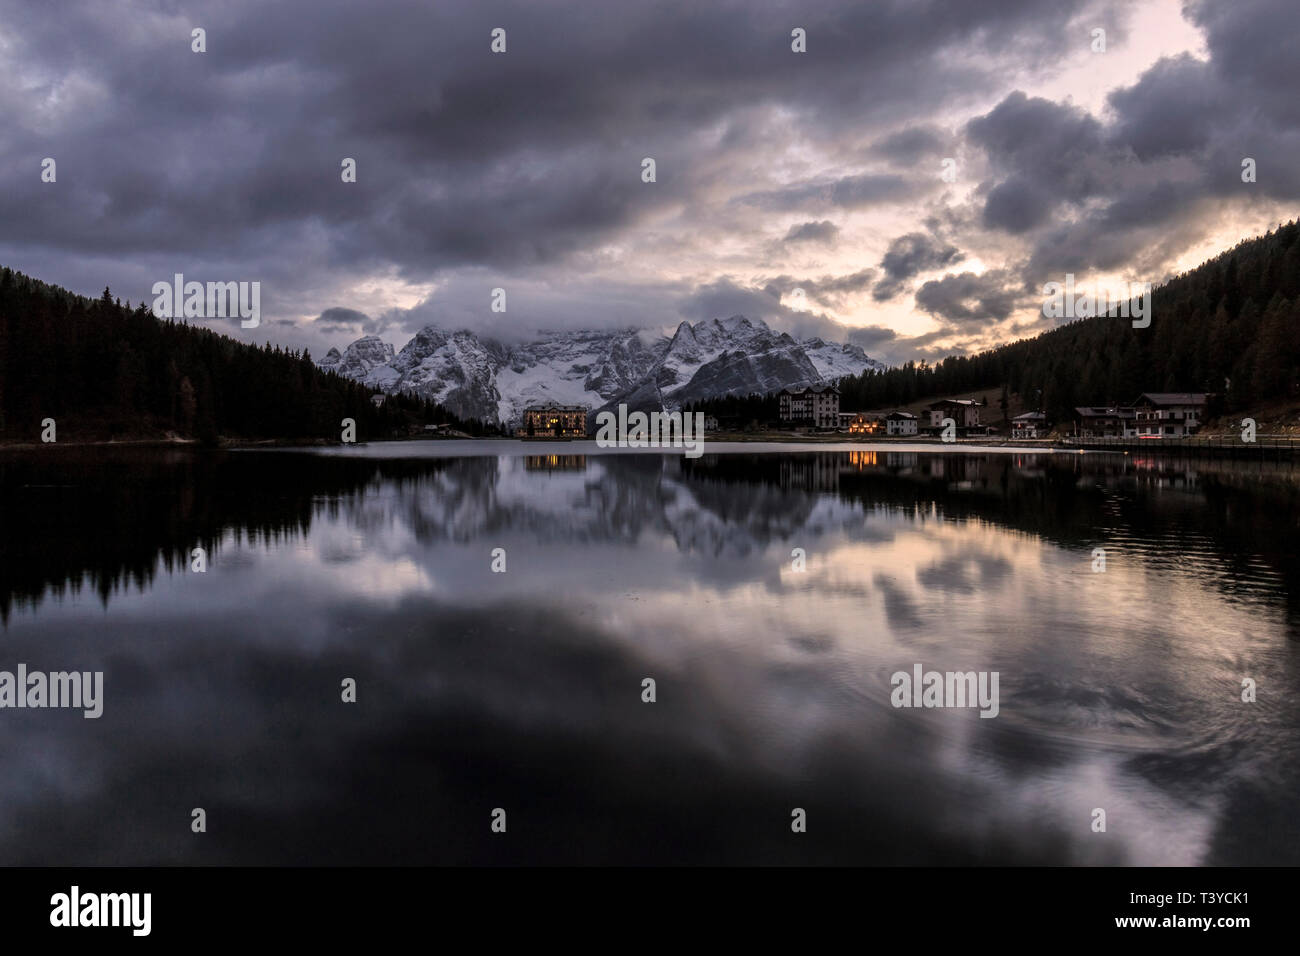 A beautiful view at dusk of the Lake of Misurina, a lake in the Dolomiti d'Ampezzo, not far from the town of Cortina. Taken about 30 minutes after sun - Stock Image